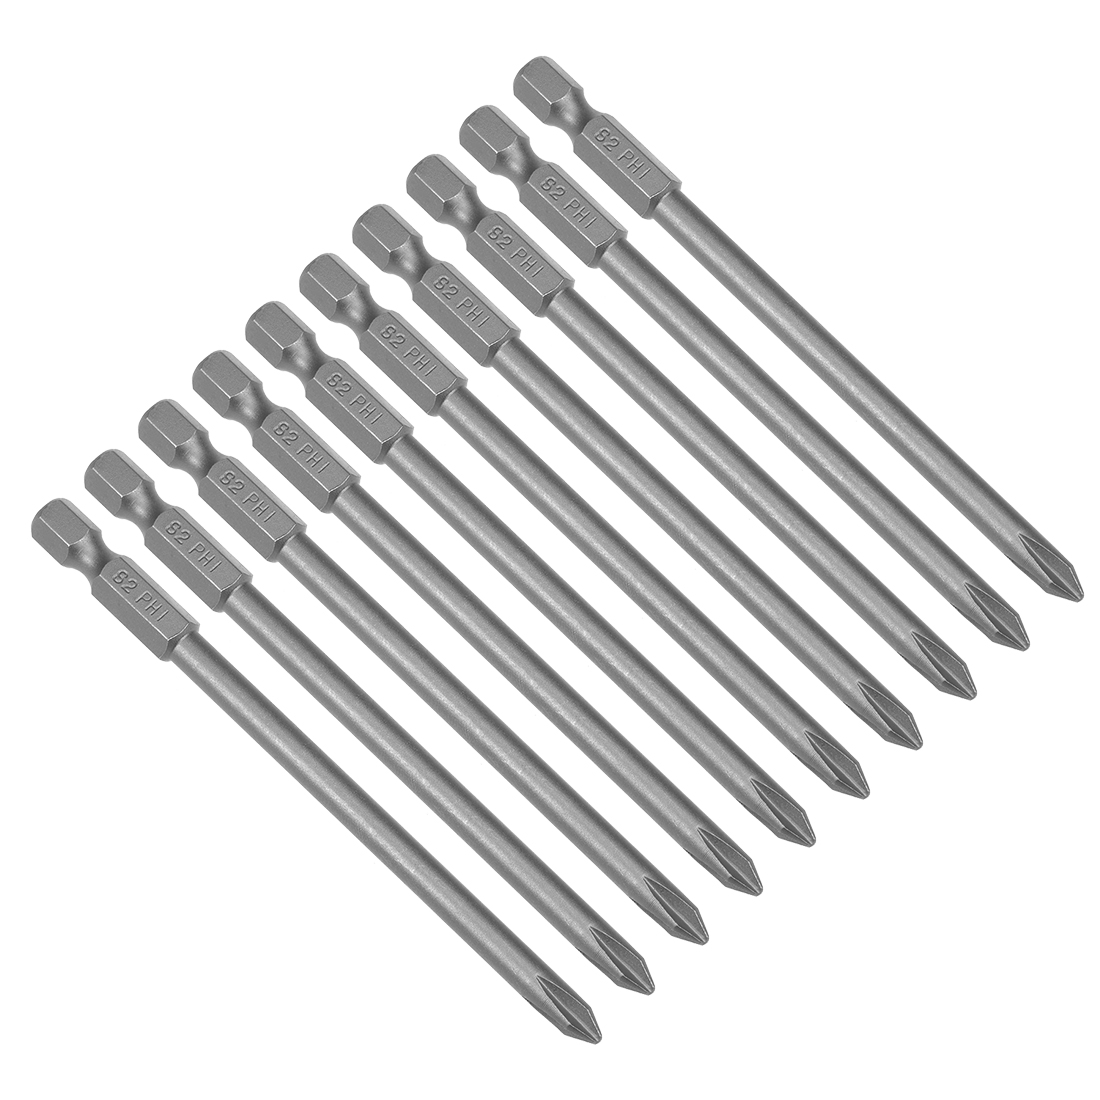 S2 Tool Steel Single Cross Screwdriver Bits with Circles Hex Shank ca